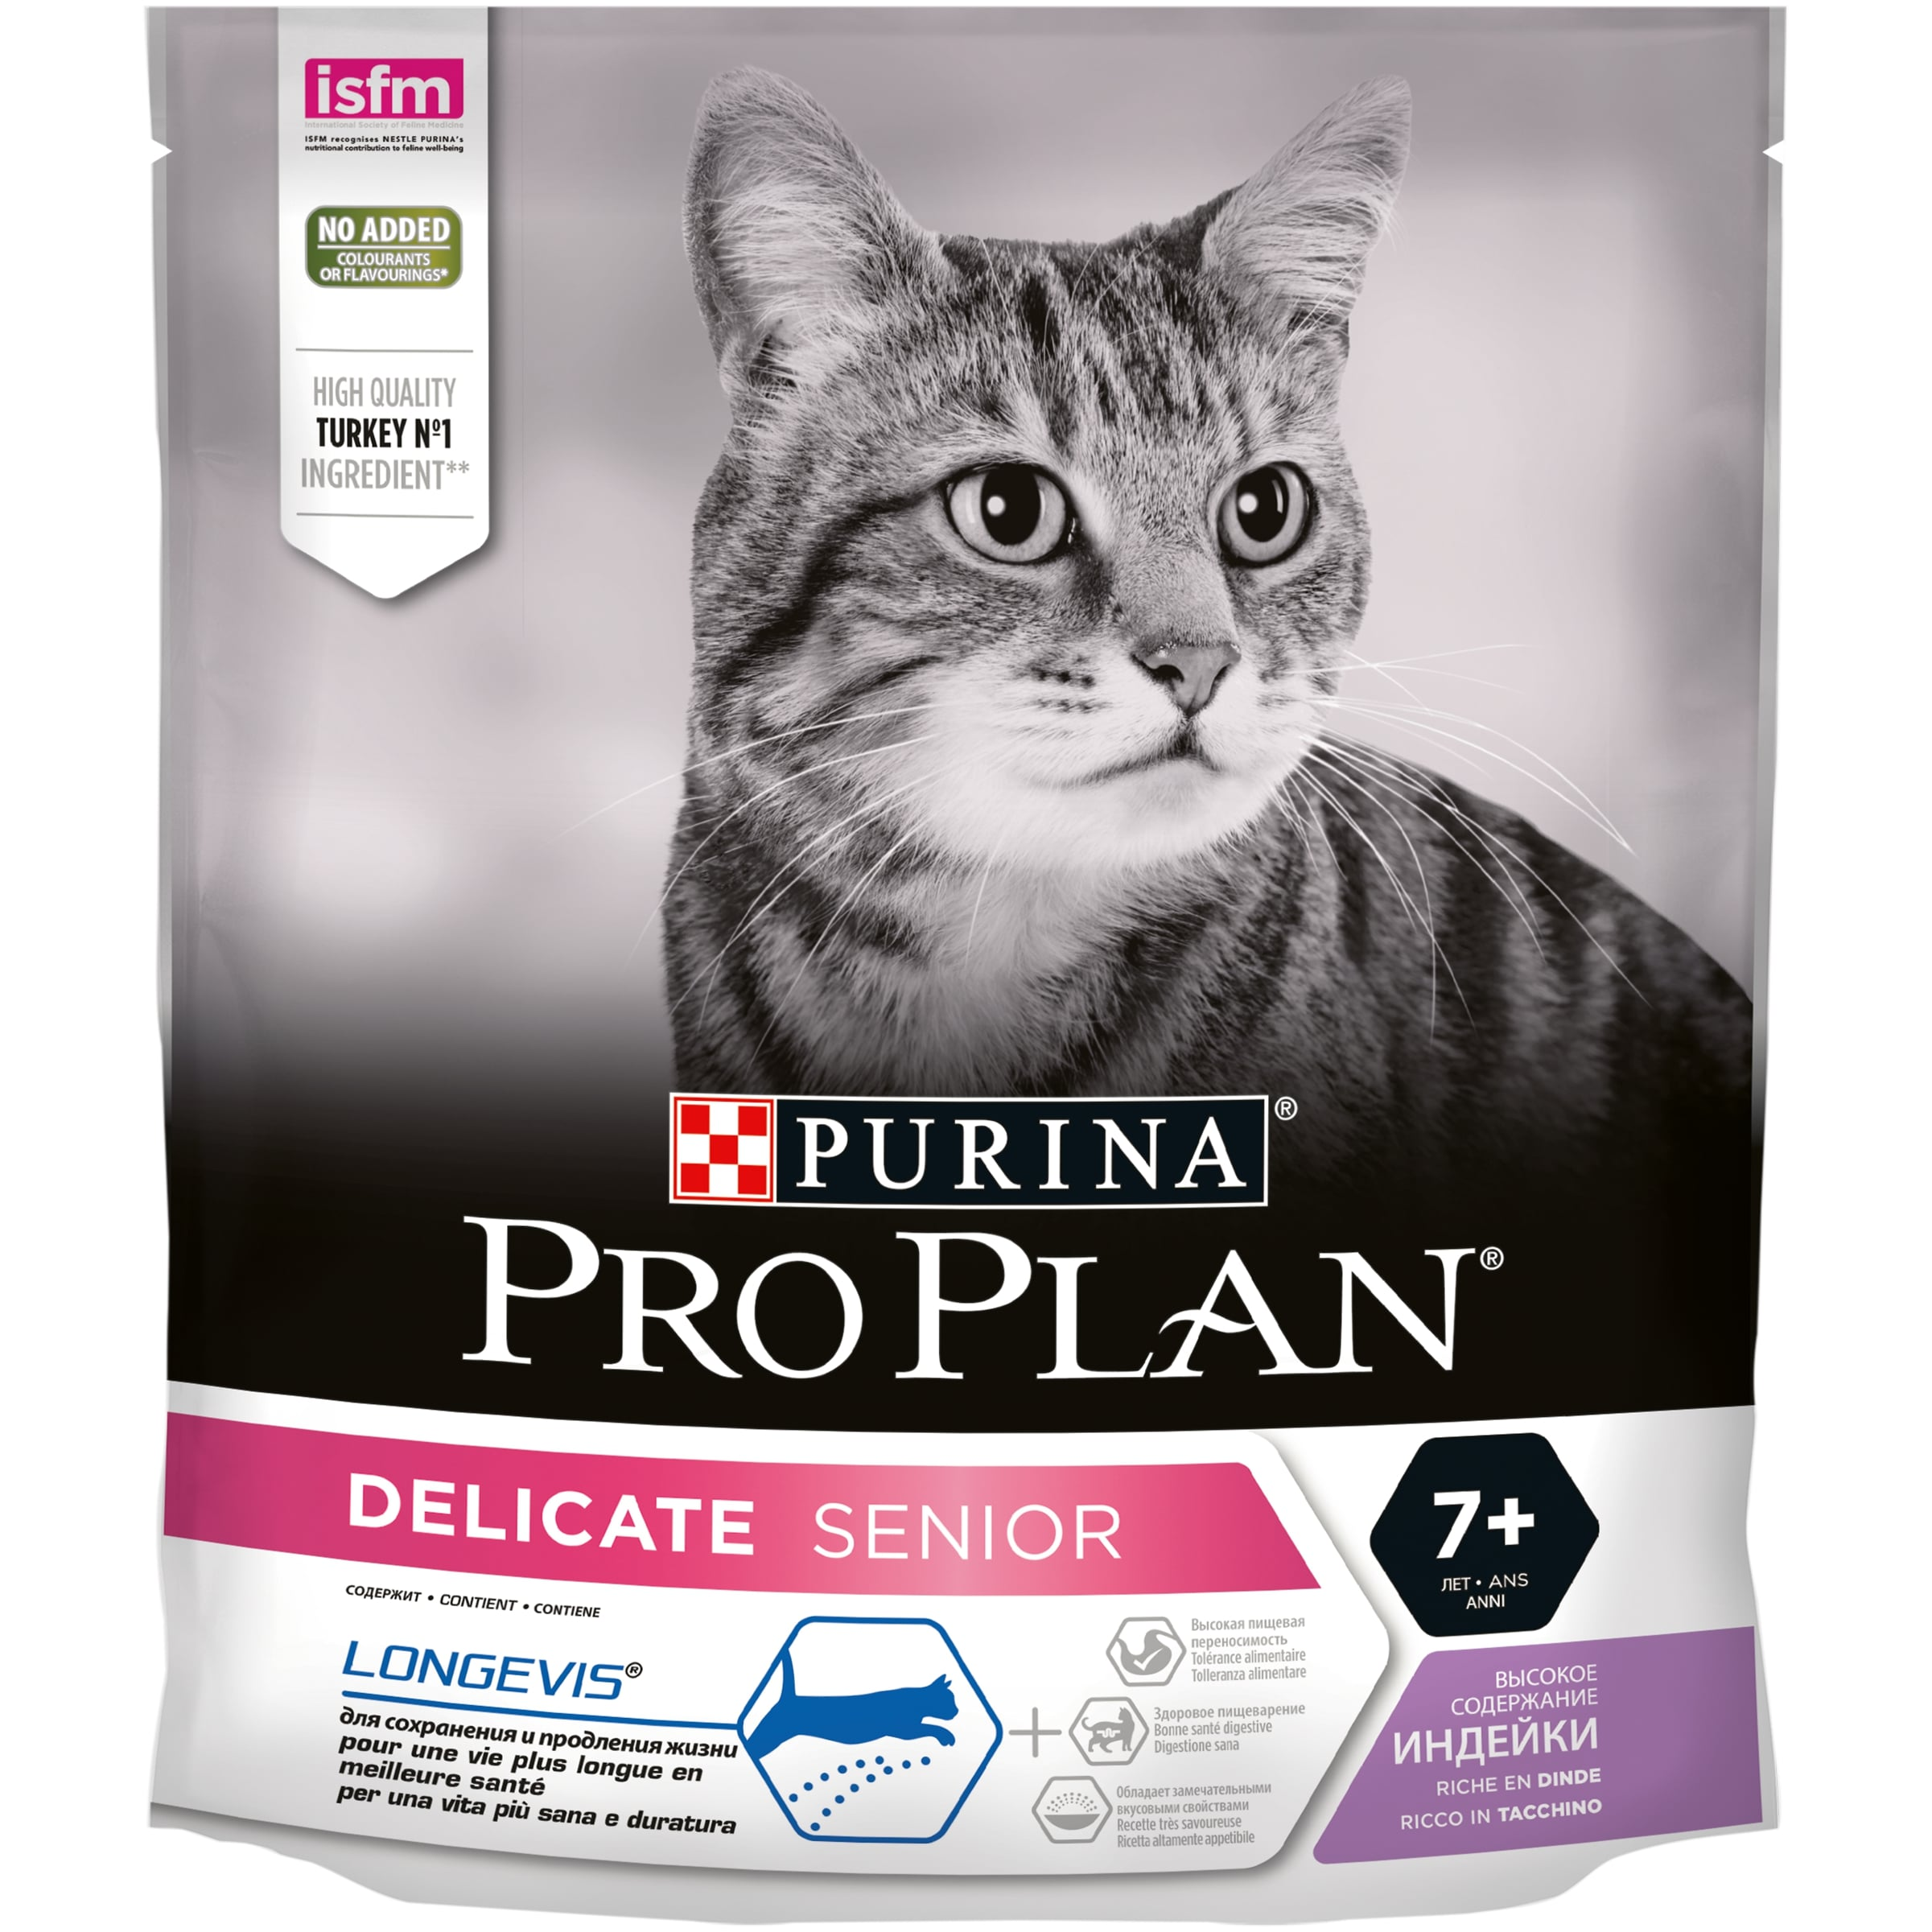 Pro Plan Delicate Senior dry food for adult cats over 7 years old with sensitive digestion, with turkey, Package, 400 g pro plan delicate senior dry food for adult cats over 7 years old with sensitive digestion with turkey package 3 kg